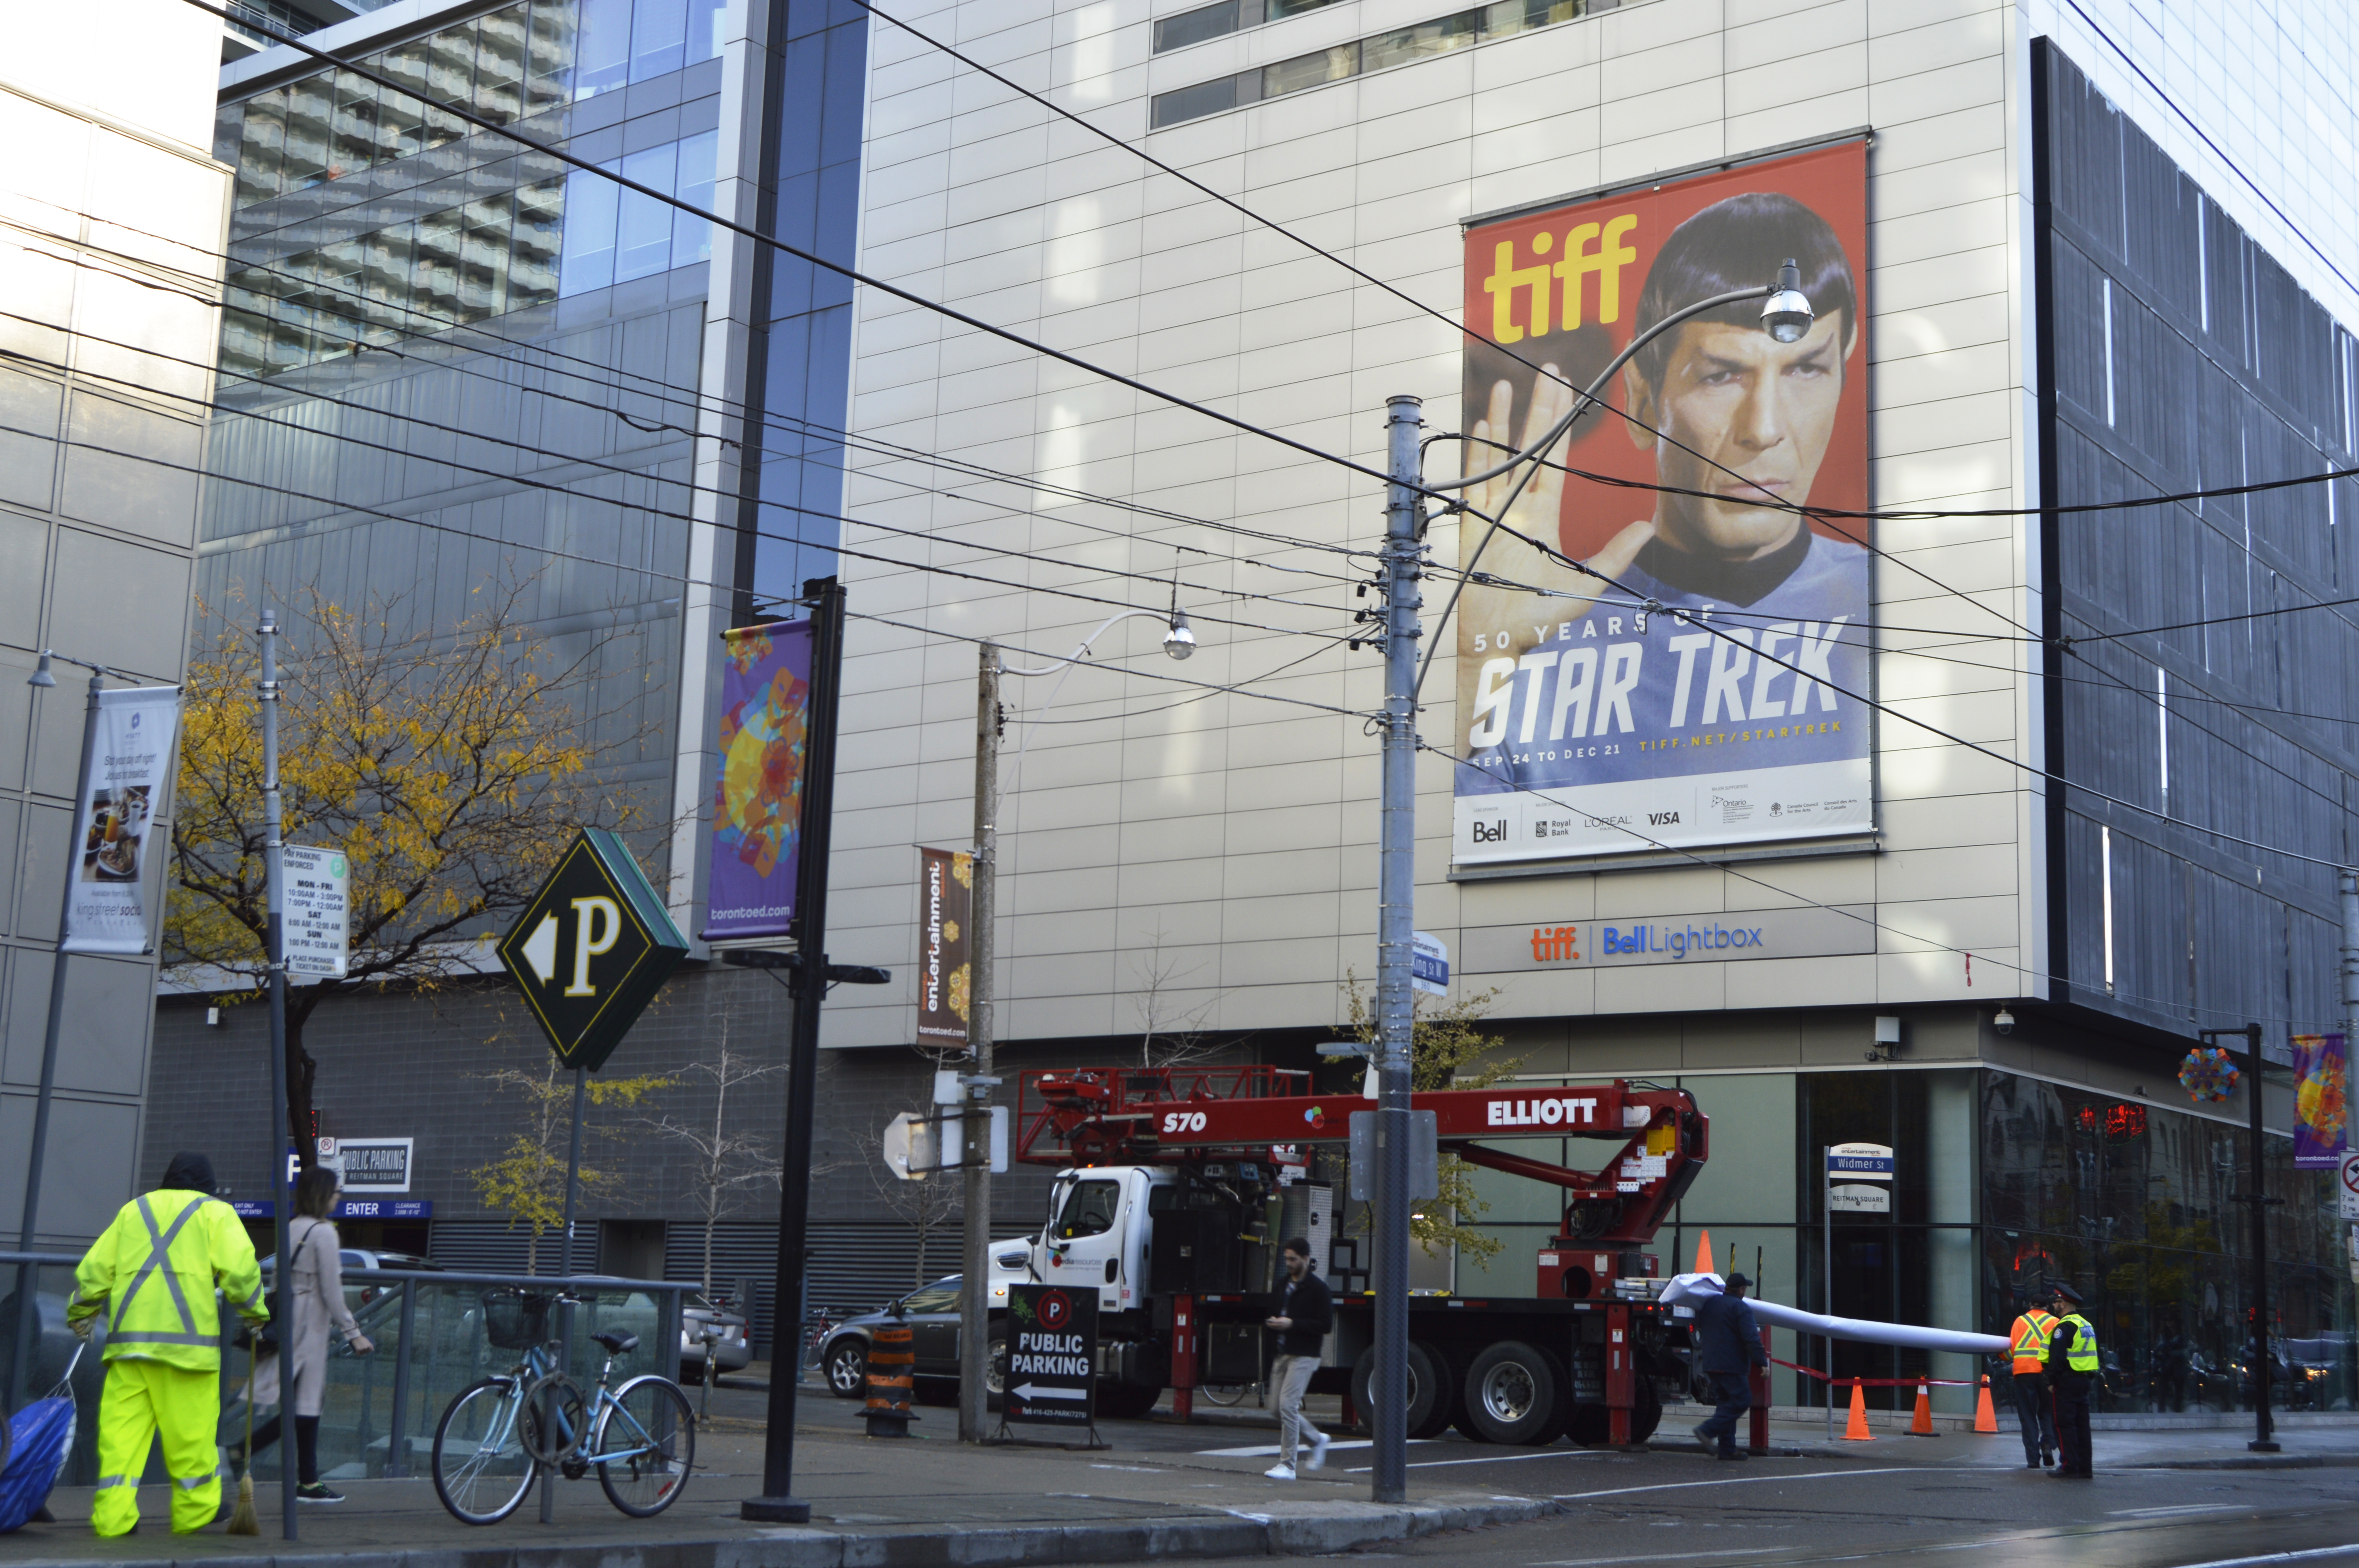 TIFF celebrates 50 years of Star Trek, banners printed and installed by Media Resources using the Frameless Frame system, Toronto, ON